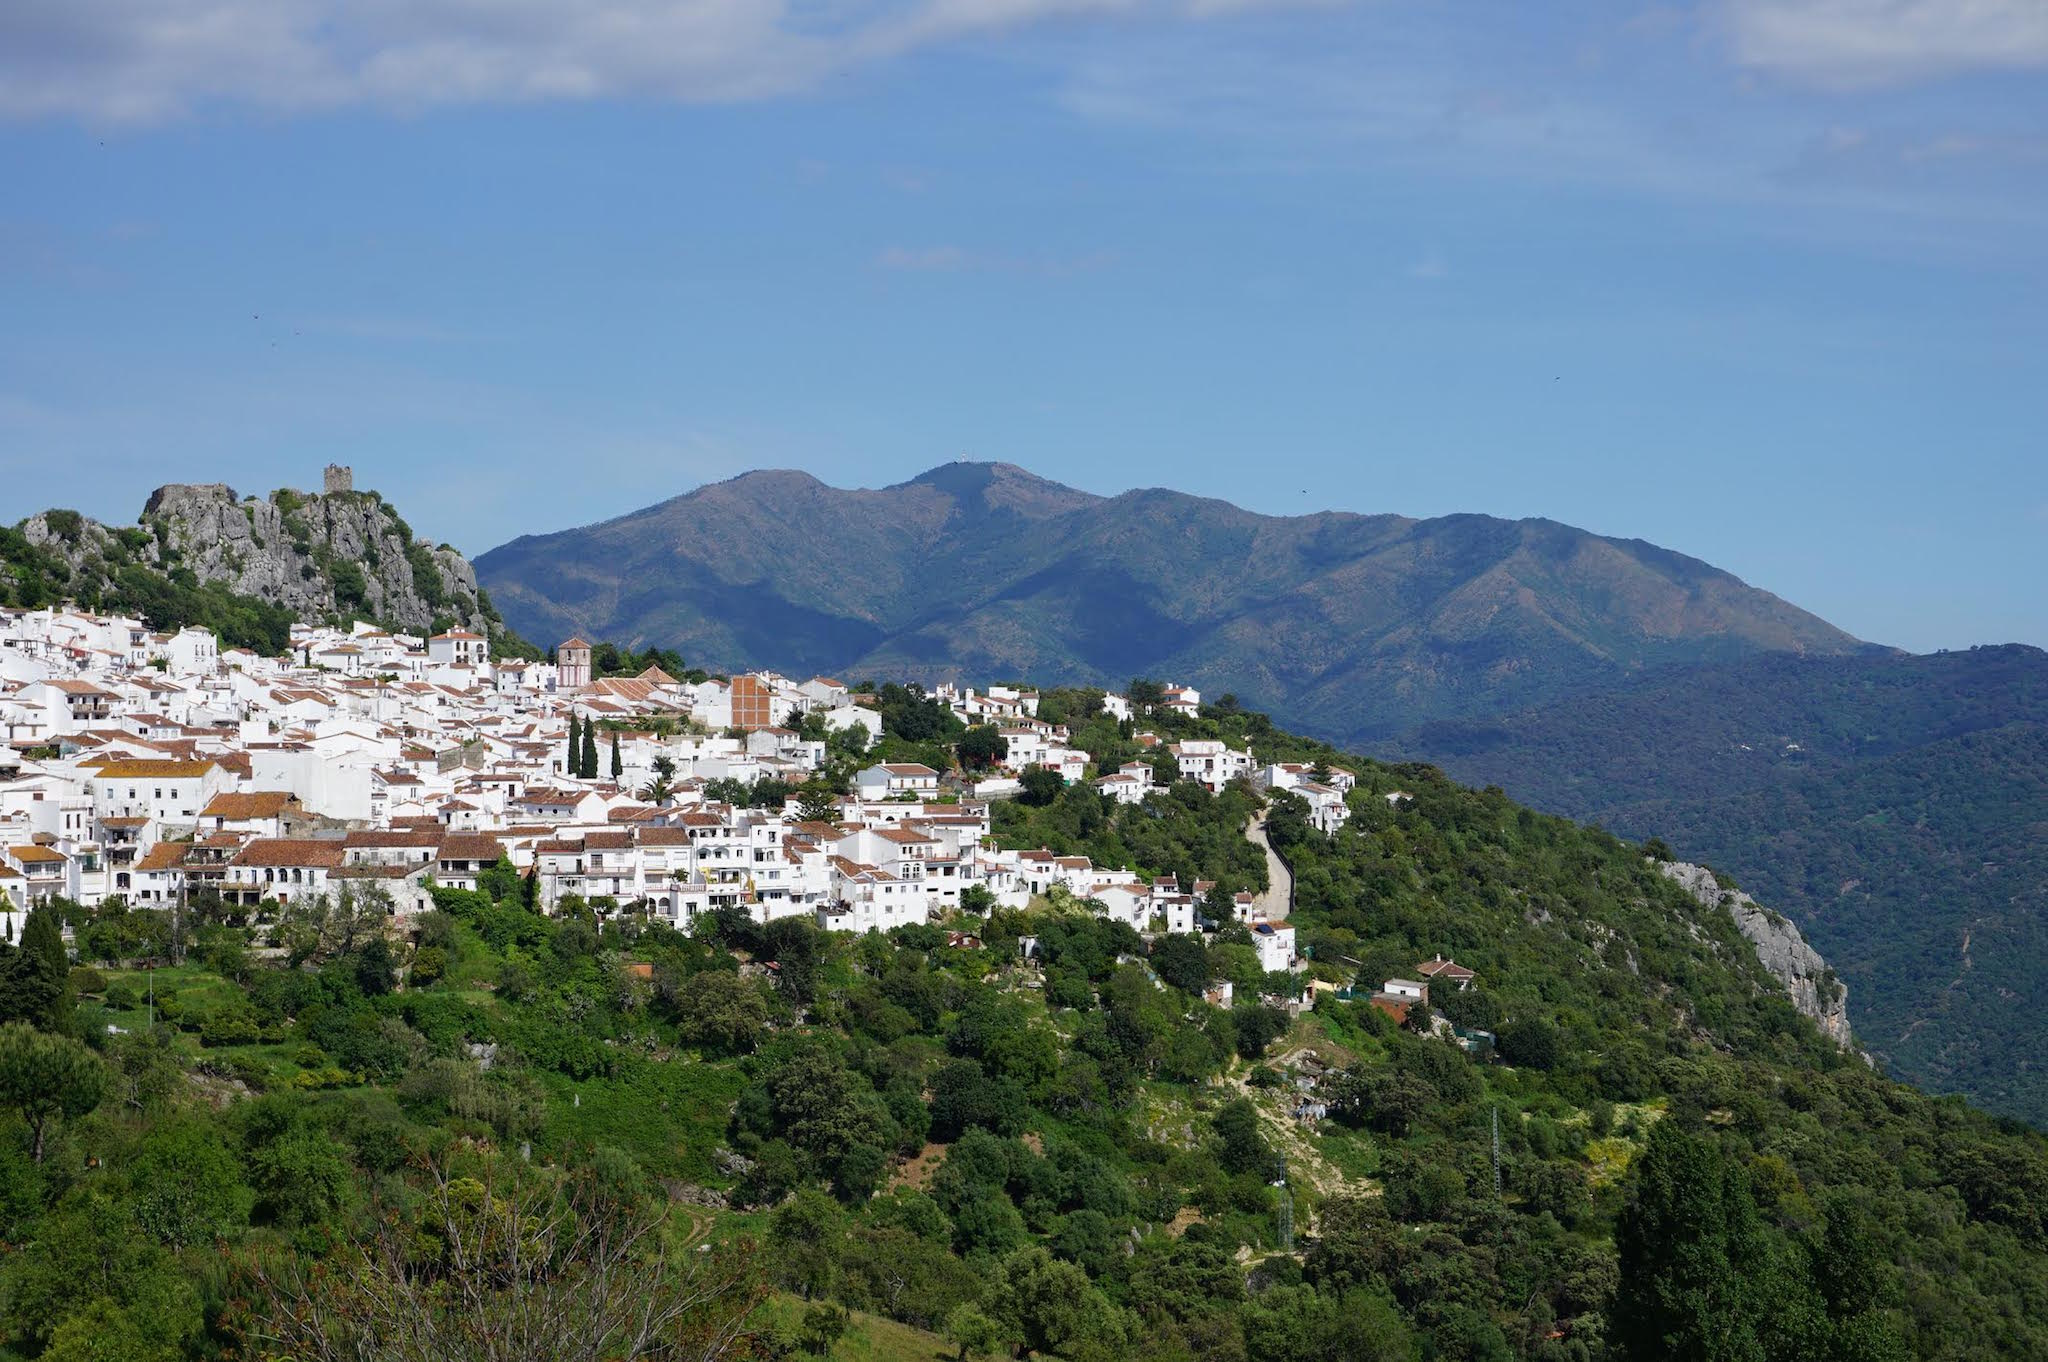 Gaucín, one of the quintessential 'pueblos blancos' of Andalucía property for sale